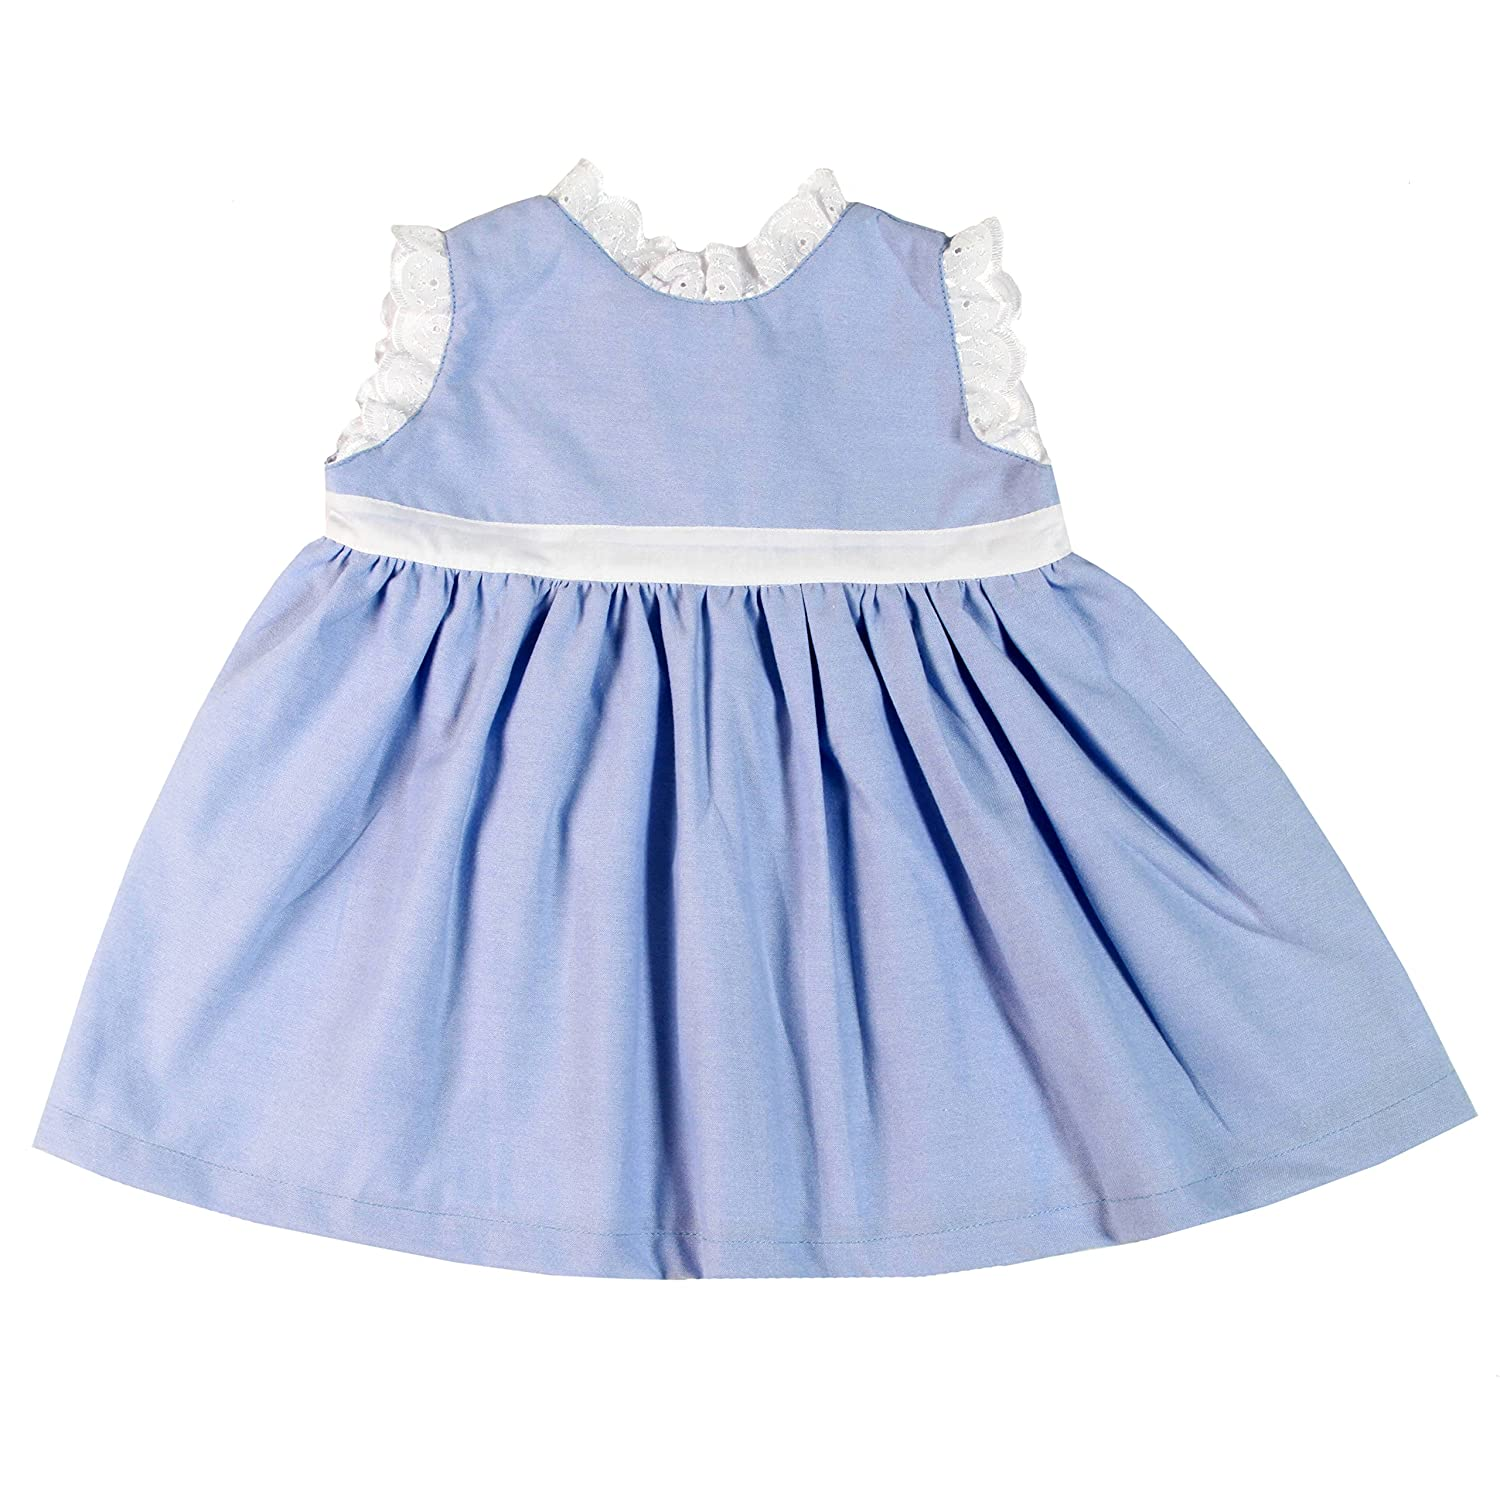 e137ca77a1aa Amazon.com  Bee nene Baby Girl Infant Sleeveless Dress Cross Organic ...